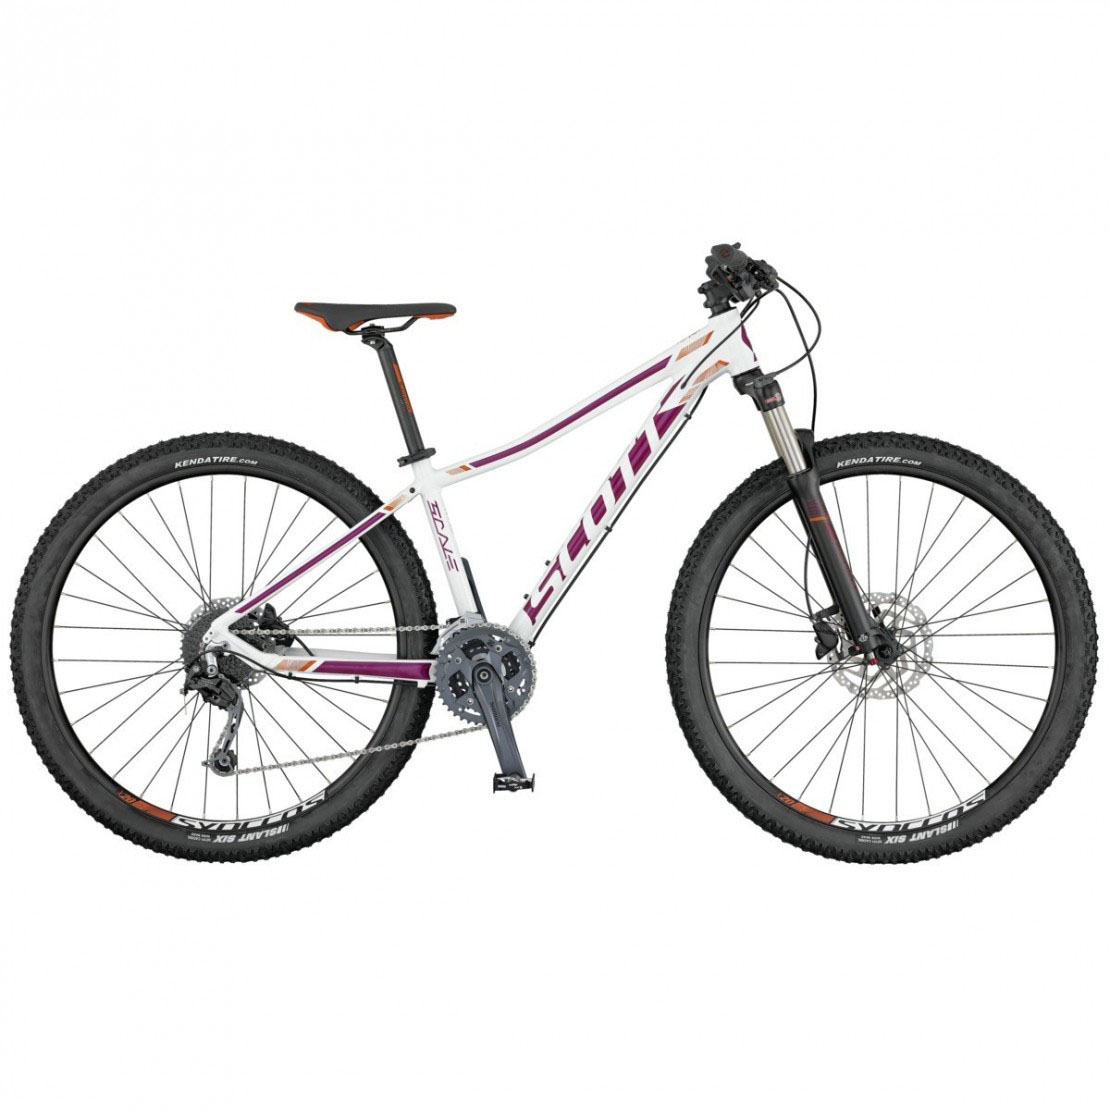 Contessa scale 940 2017 - 29er Mountain Bike